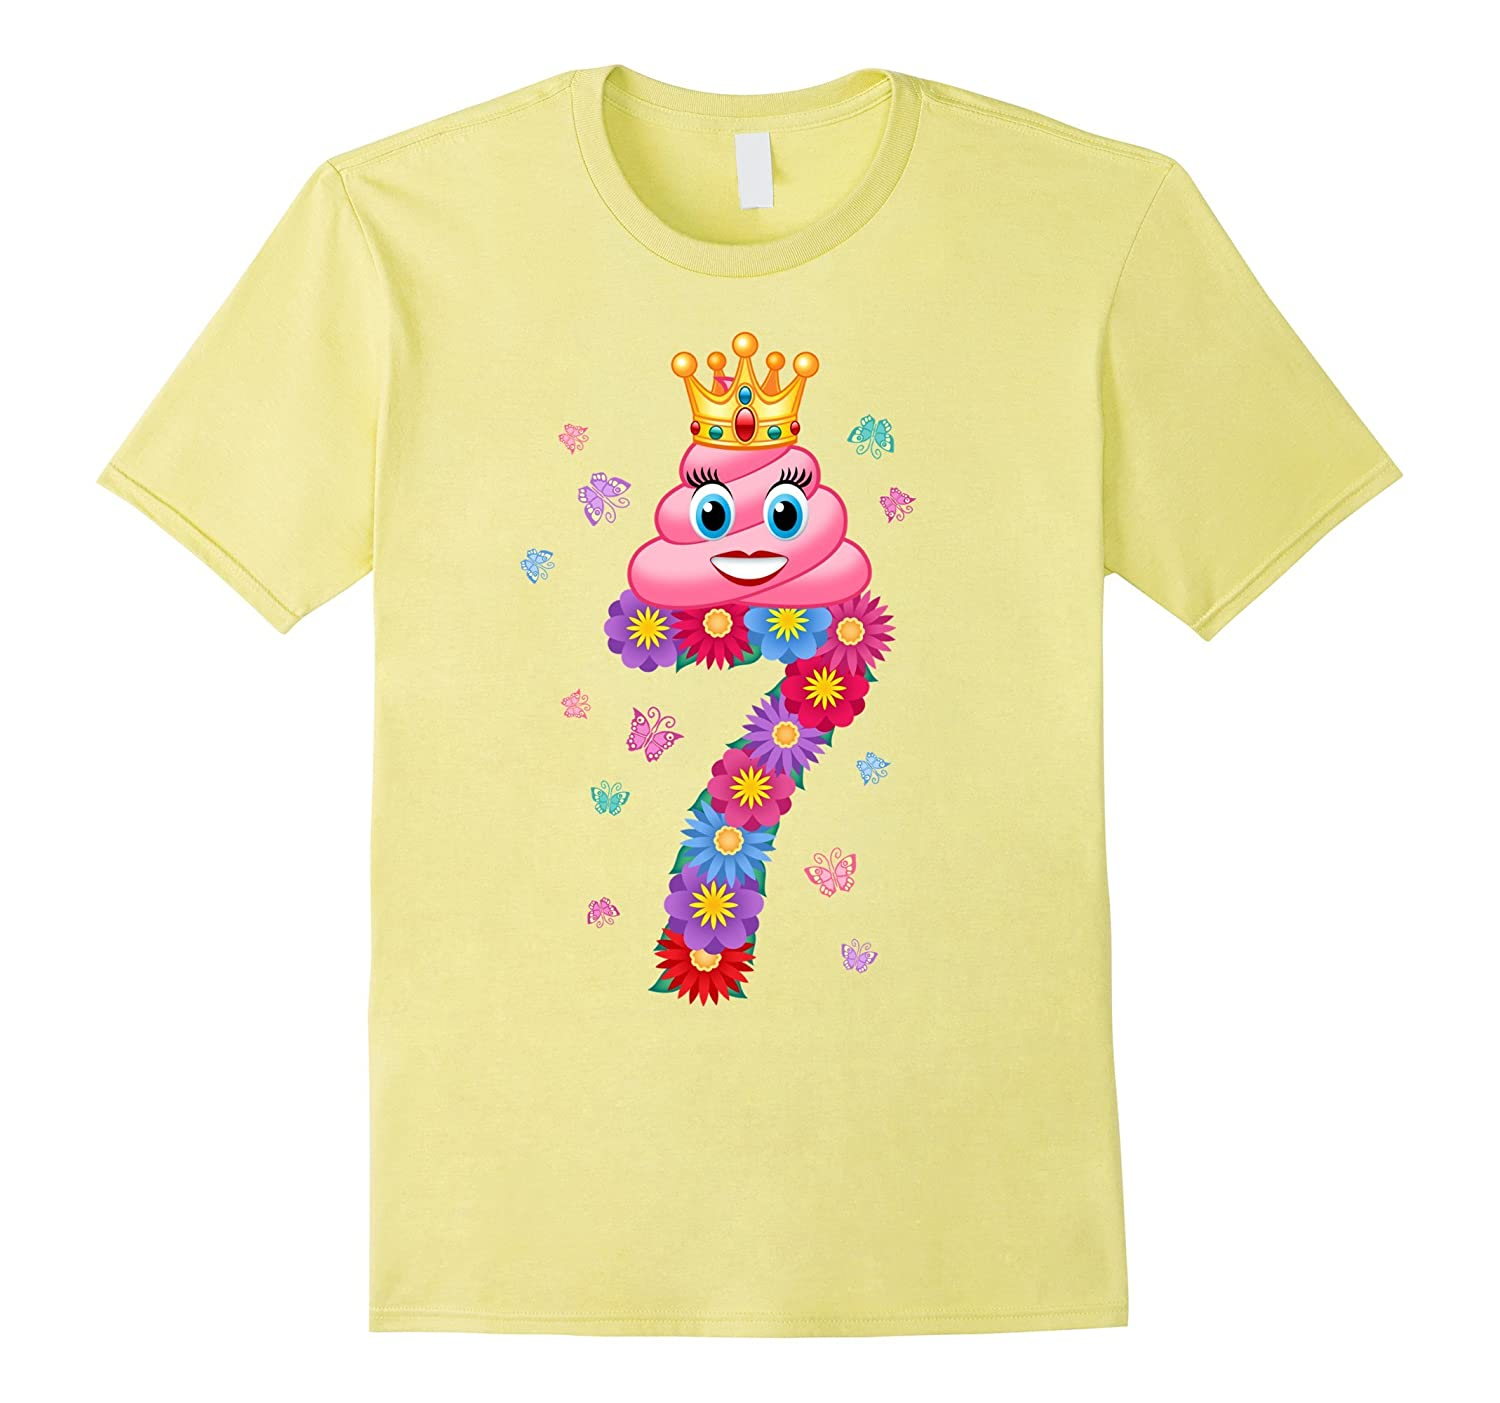 Poop Emoji Princess Cute Girls 7th Birthday T Shirt